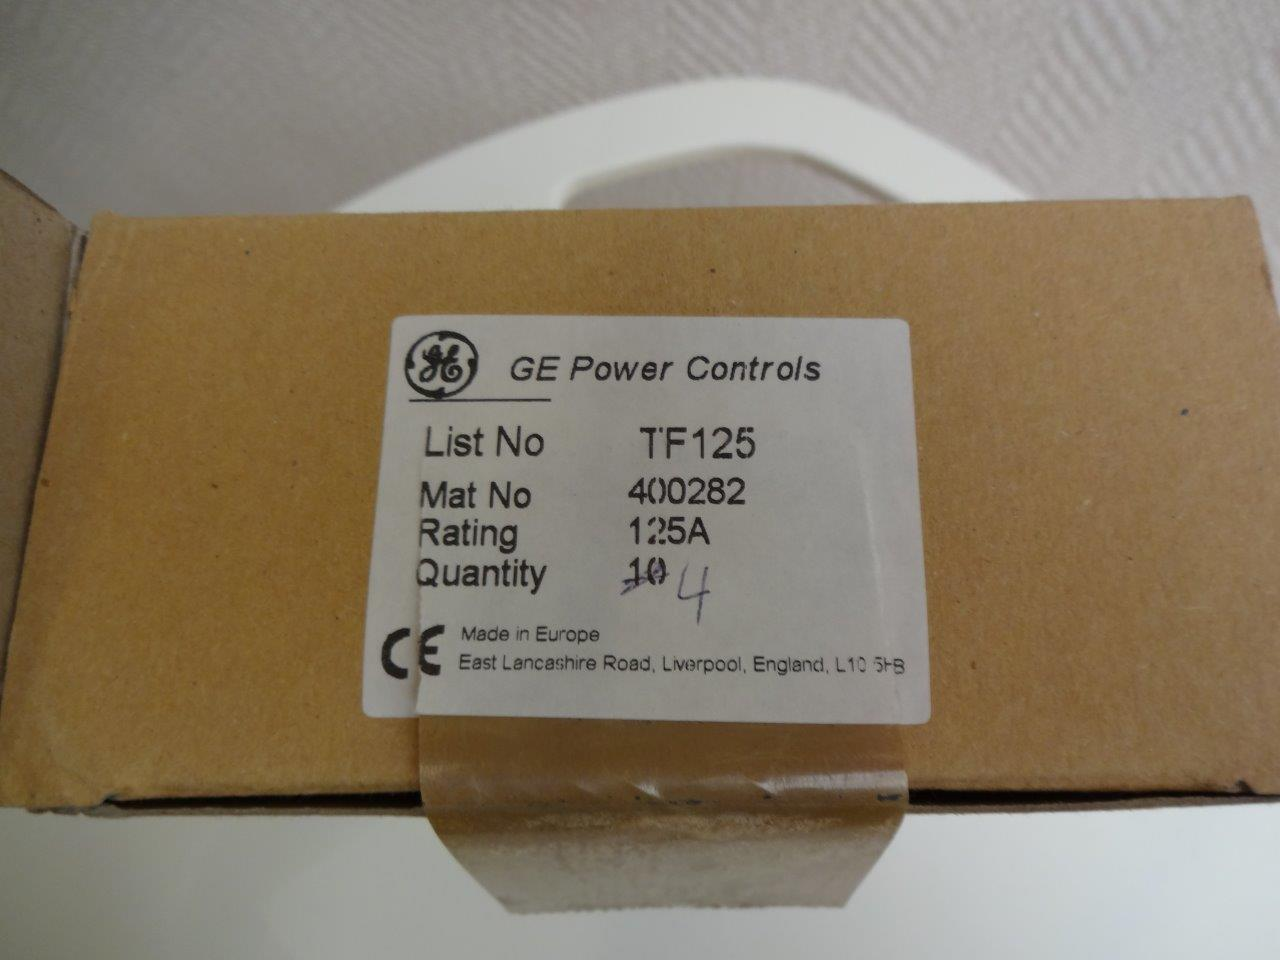 Tf125 Fuses Ge Power Controls Lwd Weutscheck Distributor Obsolete Fuse Box Bargain Offer